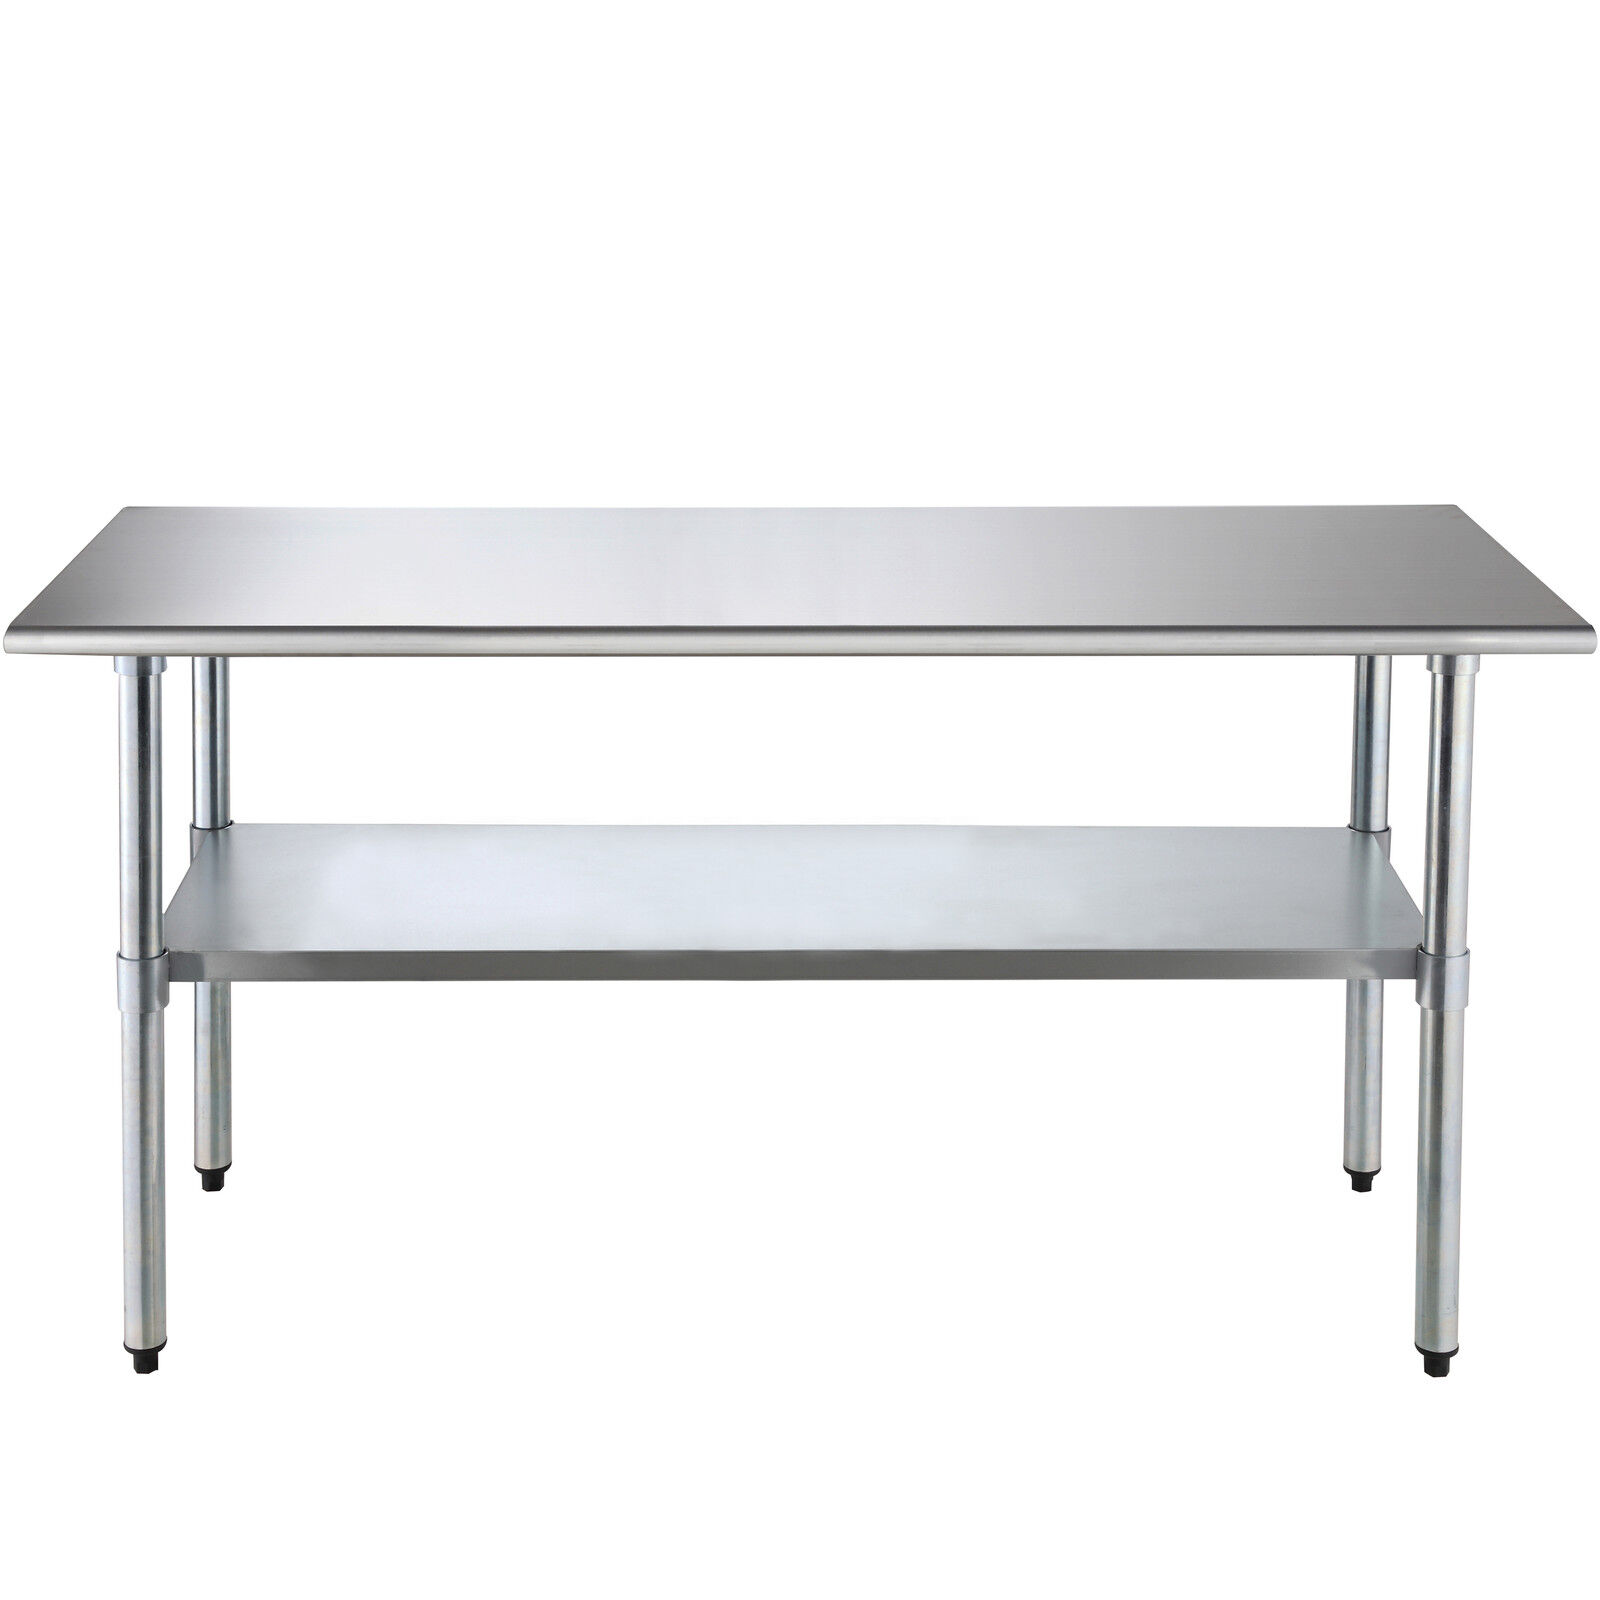 "Industrial Kitchen Prep Table: 30"" X 72"" Stainless Steel Commercial Kitchen Restaurant"